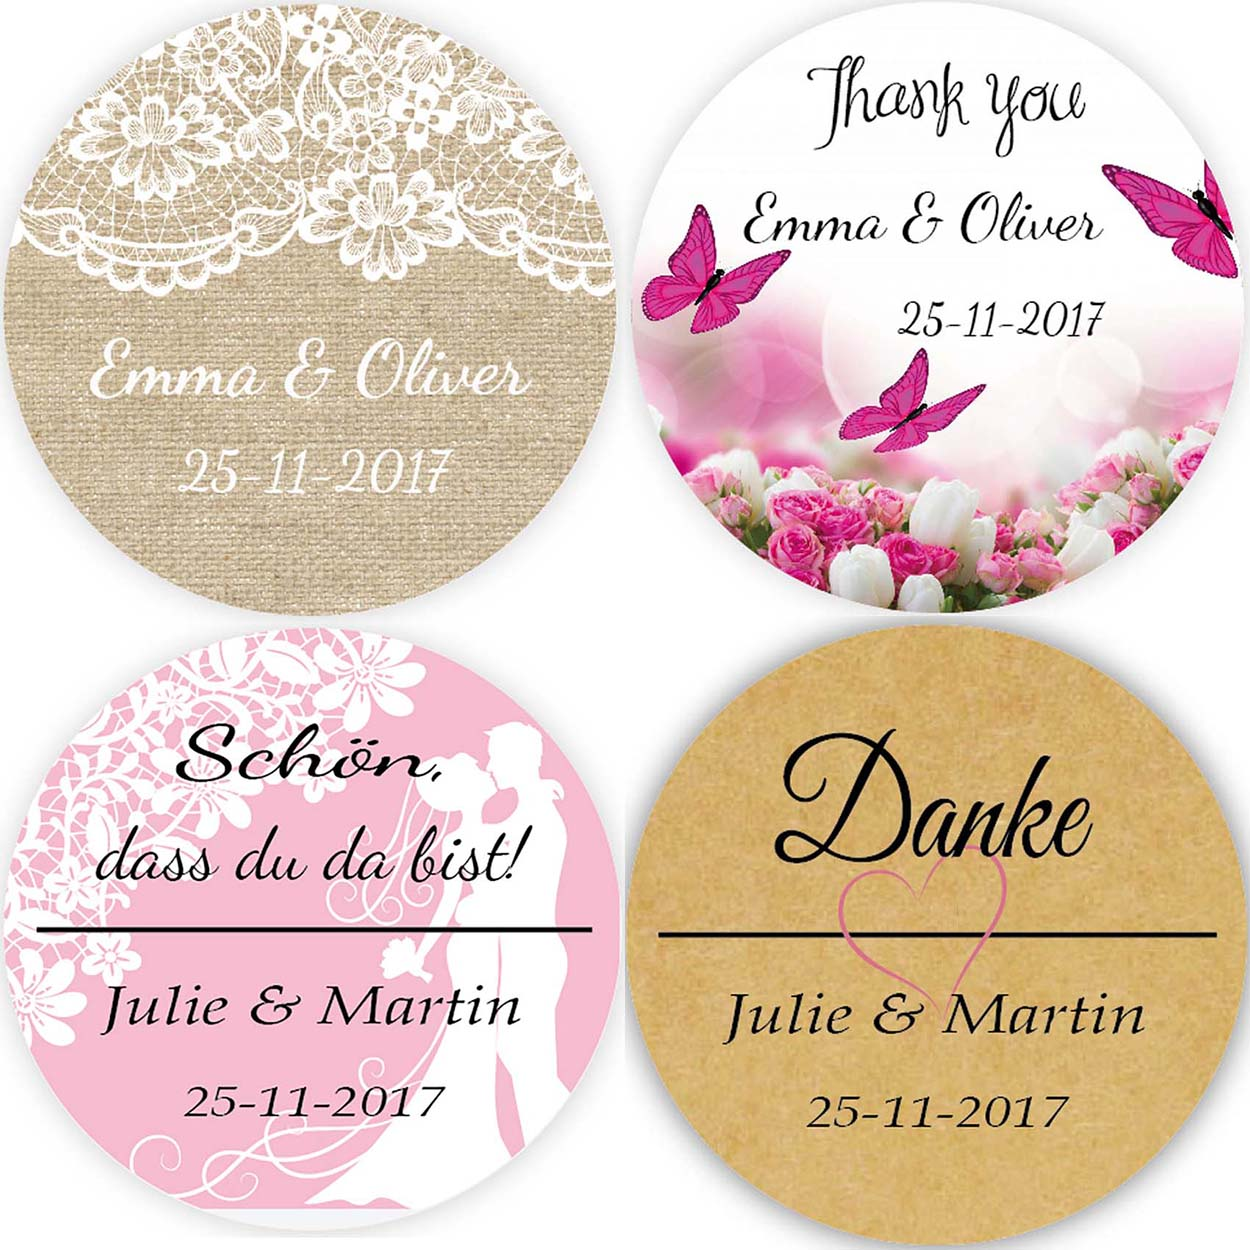 DouxArt 100 Pieces 4CM Personalized Wedding Stickers, Wedding Favors Labels, Party Communion Baptism Gifts Package Seals